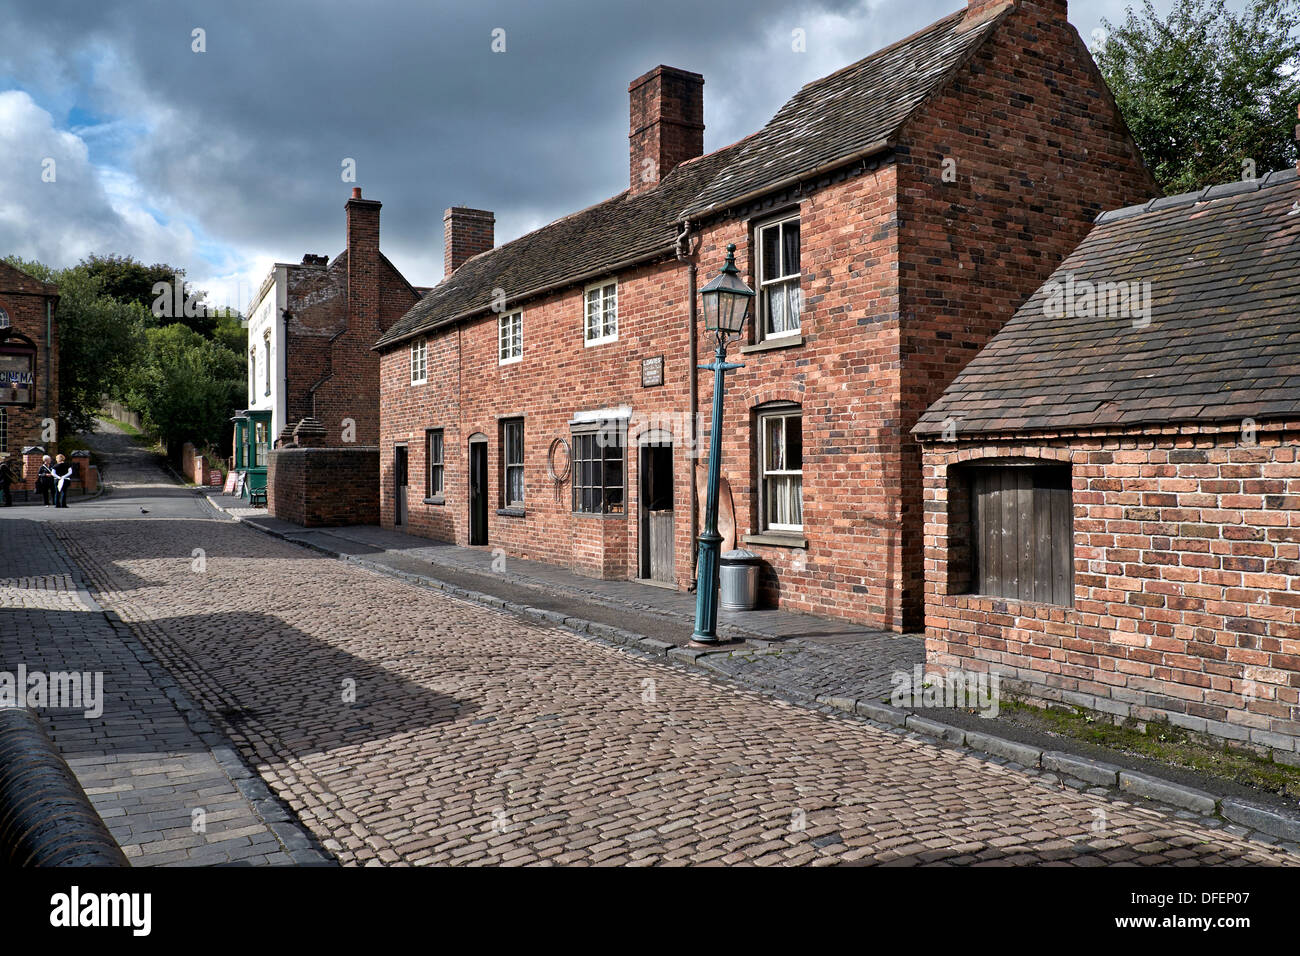 Back To Back Houses : Cobbled street and brick built terraced houses dating back